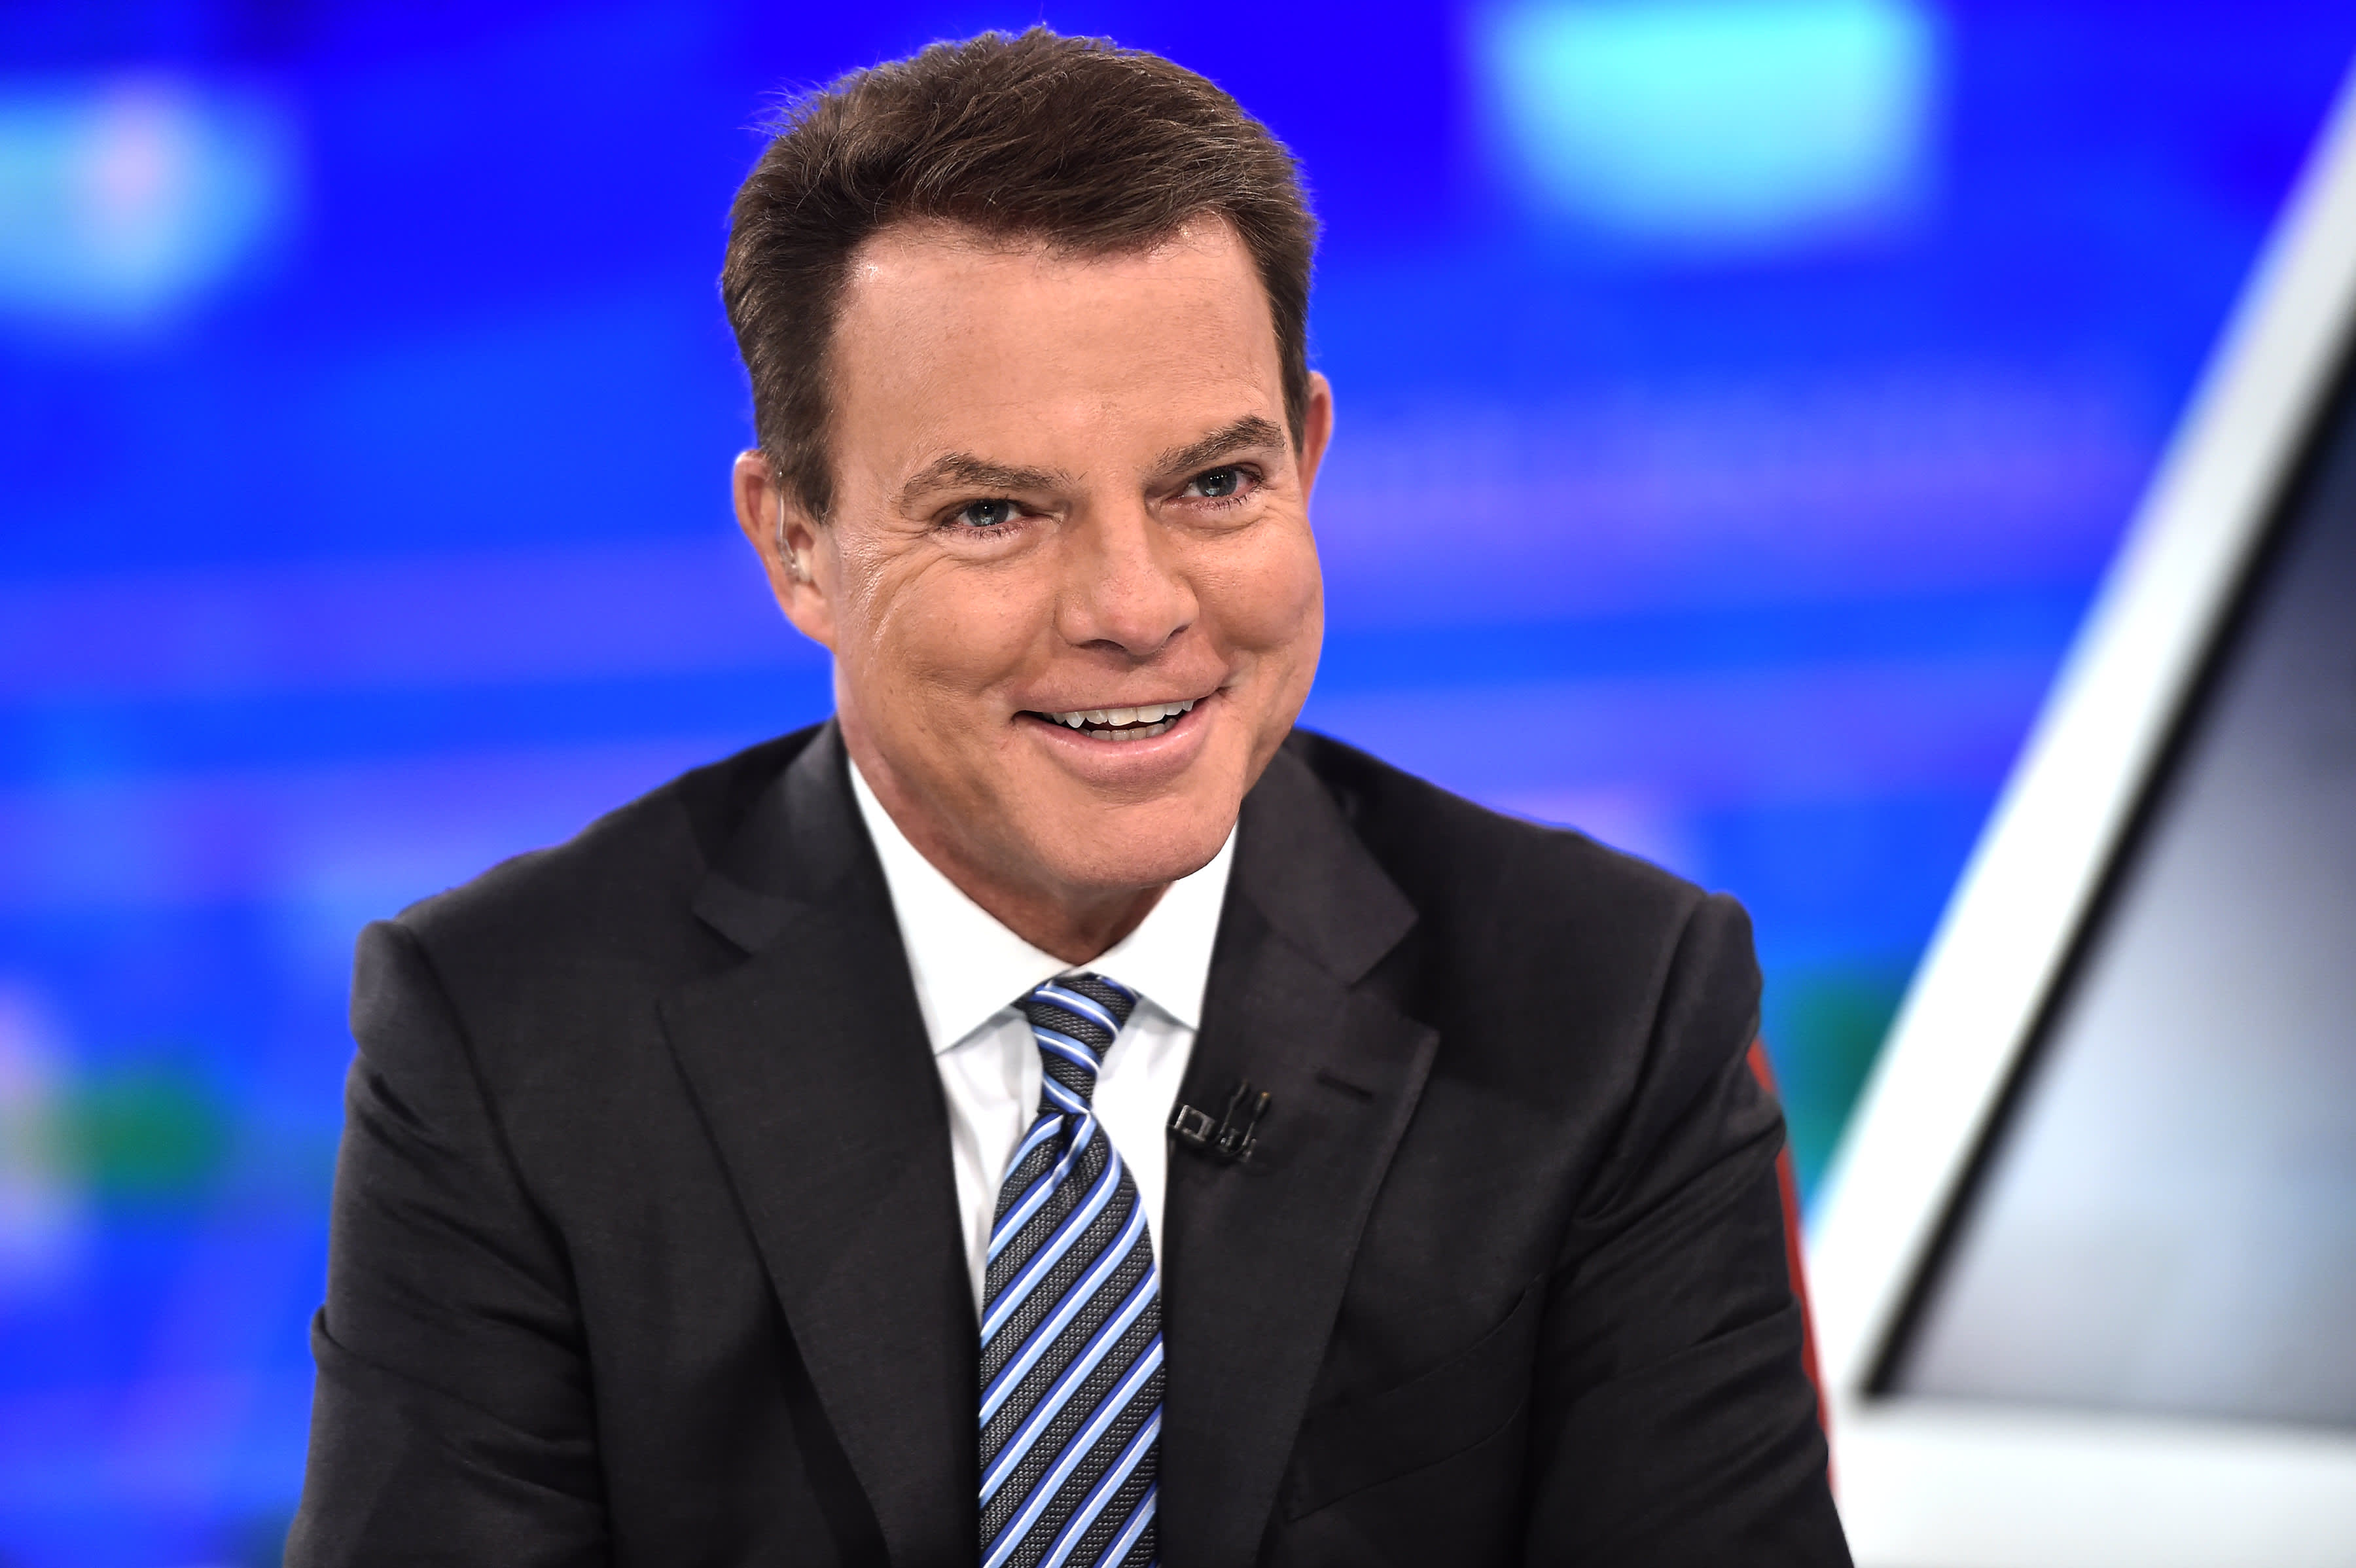 Former Fox News anchor Shepard Smith joins CNBC with new evening show 5